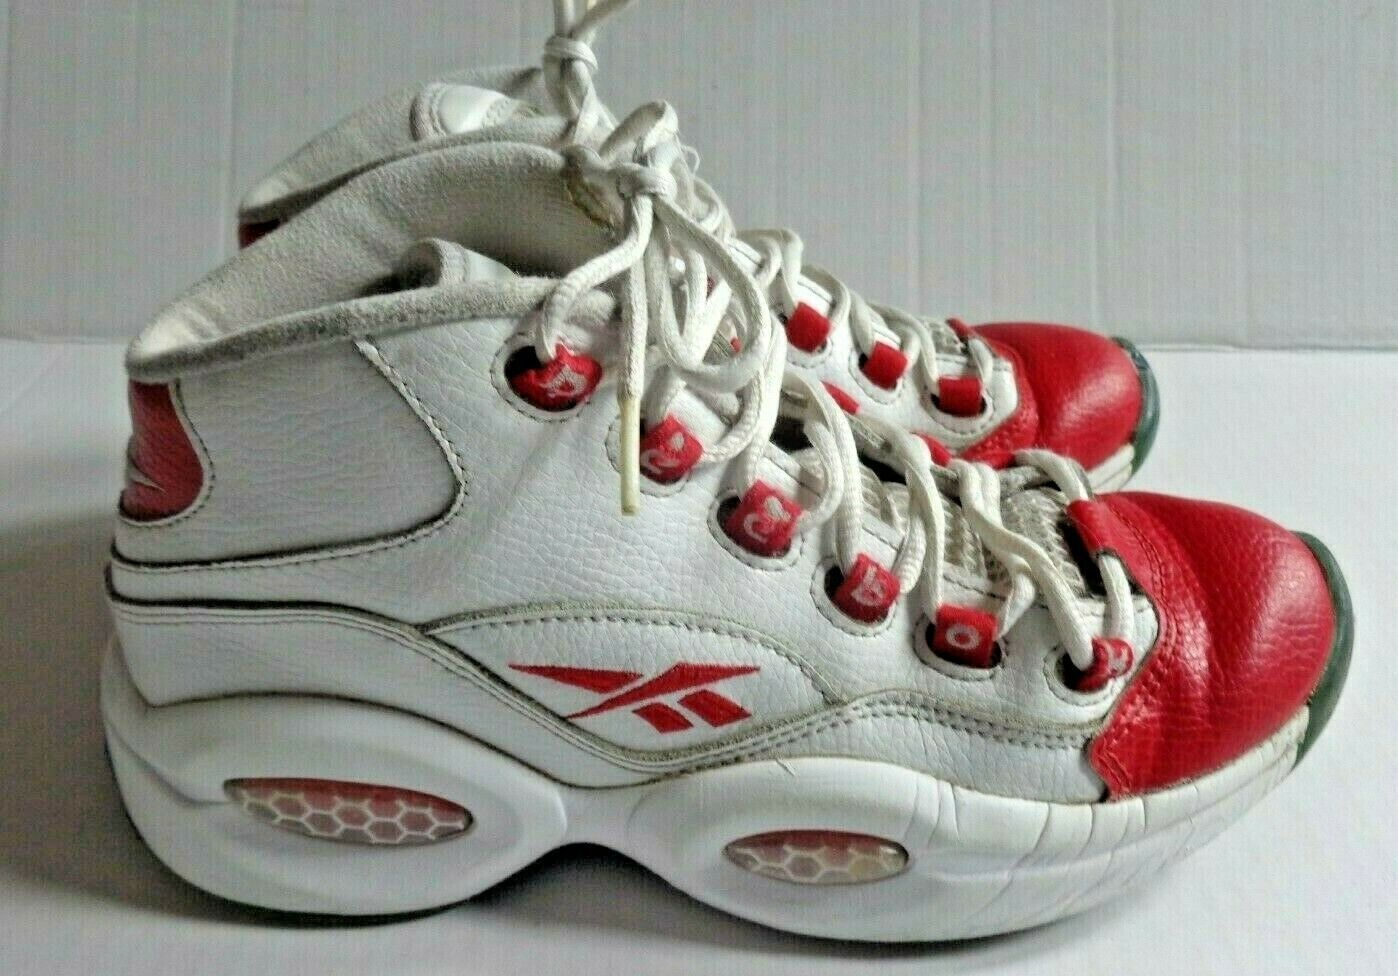 REEBOK Question Mids Basketball Shoe Youth Size 5.5 White Red Q School Popular